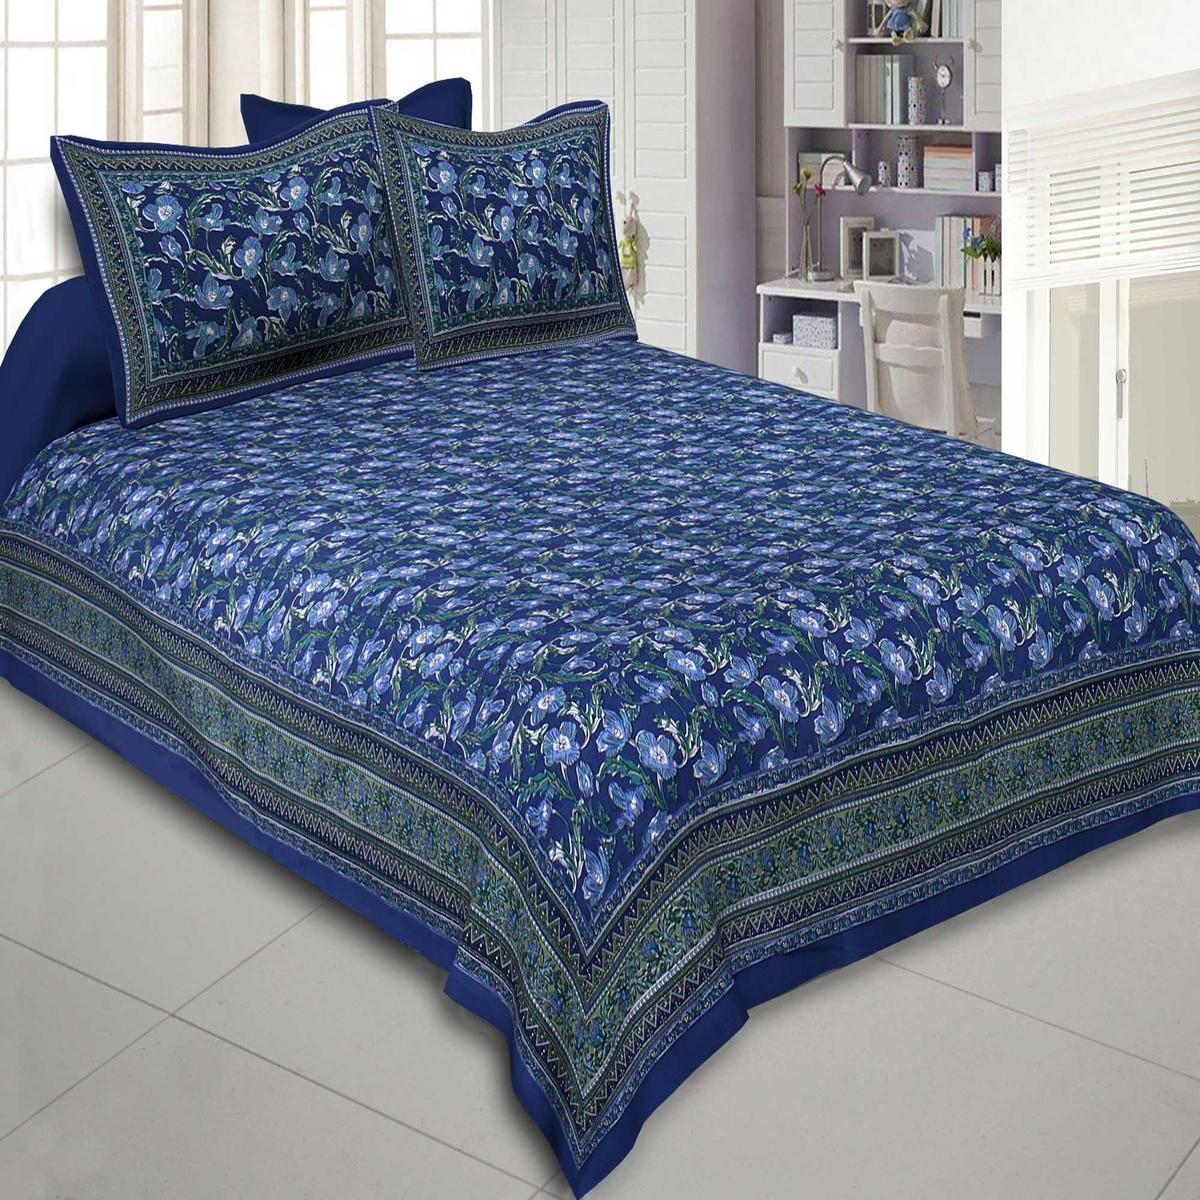 Charming Blue Colored Iconic Iris Print Cotton Double Bedsheet With 2 Pillow Cover